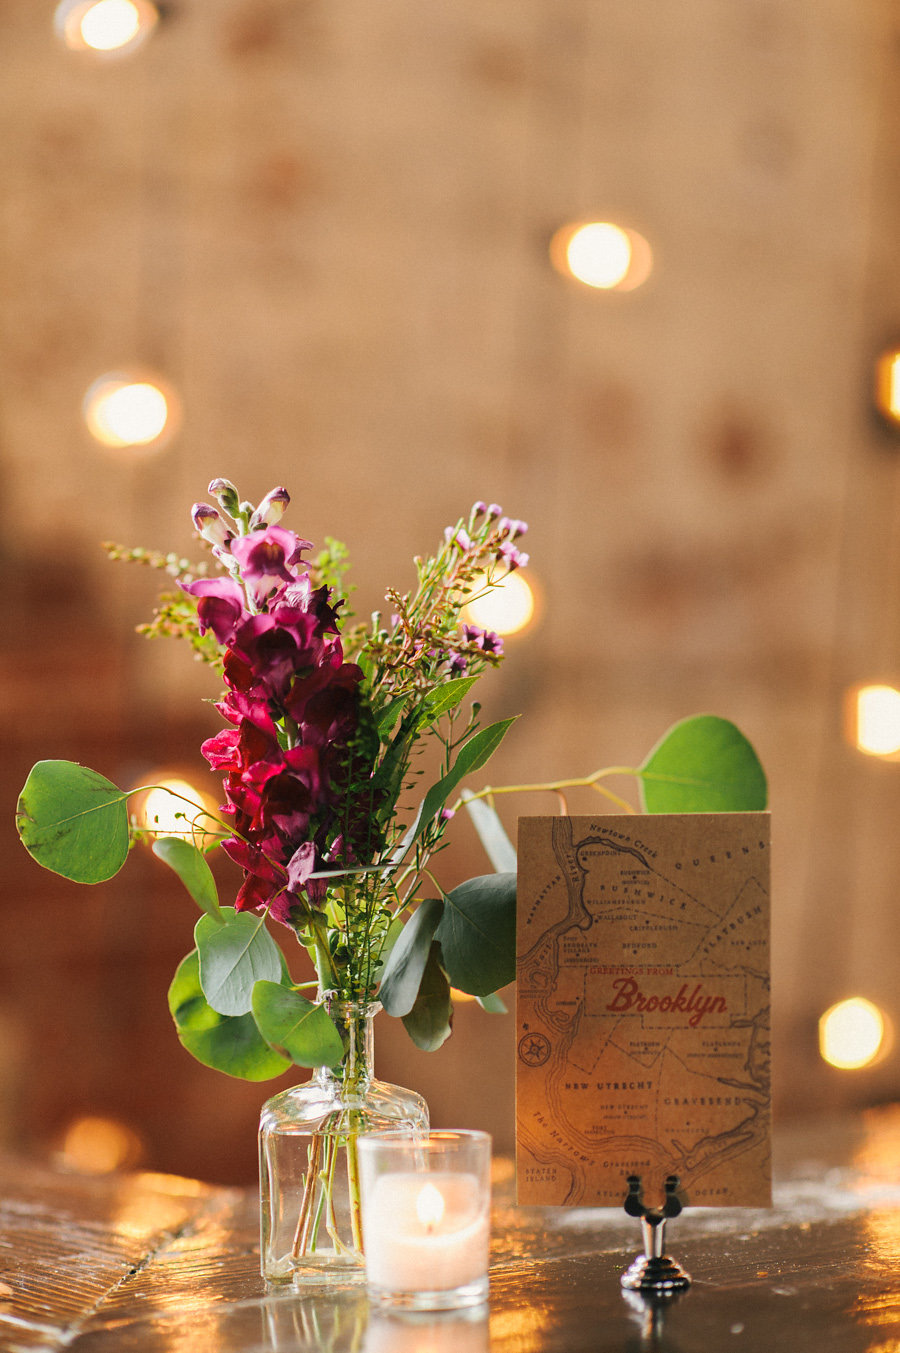 brooklyn-theme-wedding-inspiration-string-lights-rustic